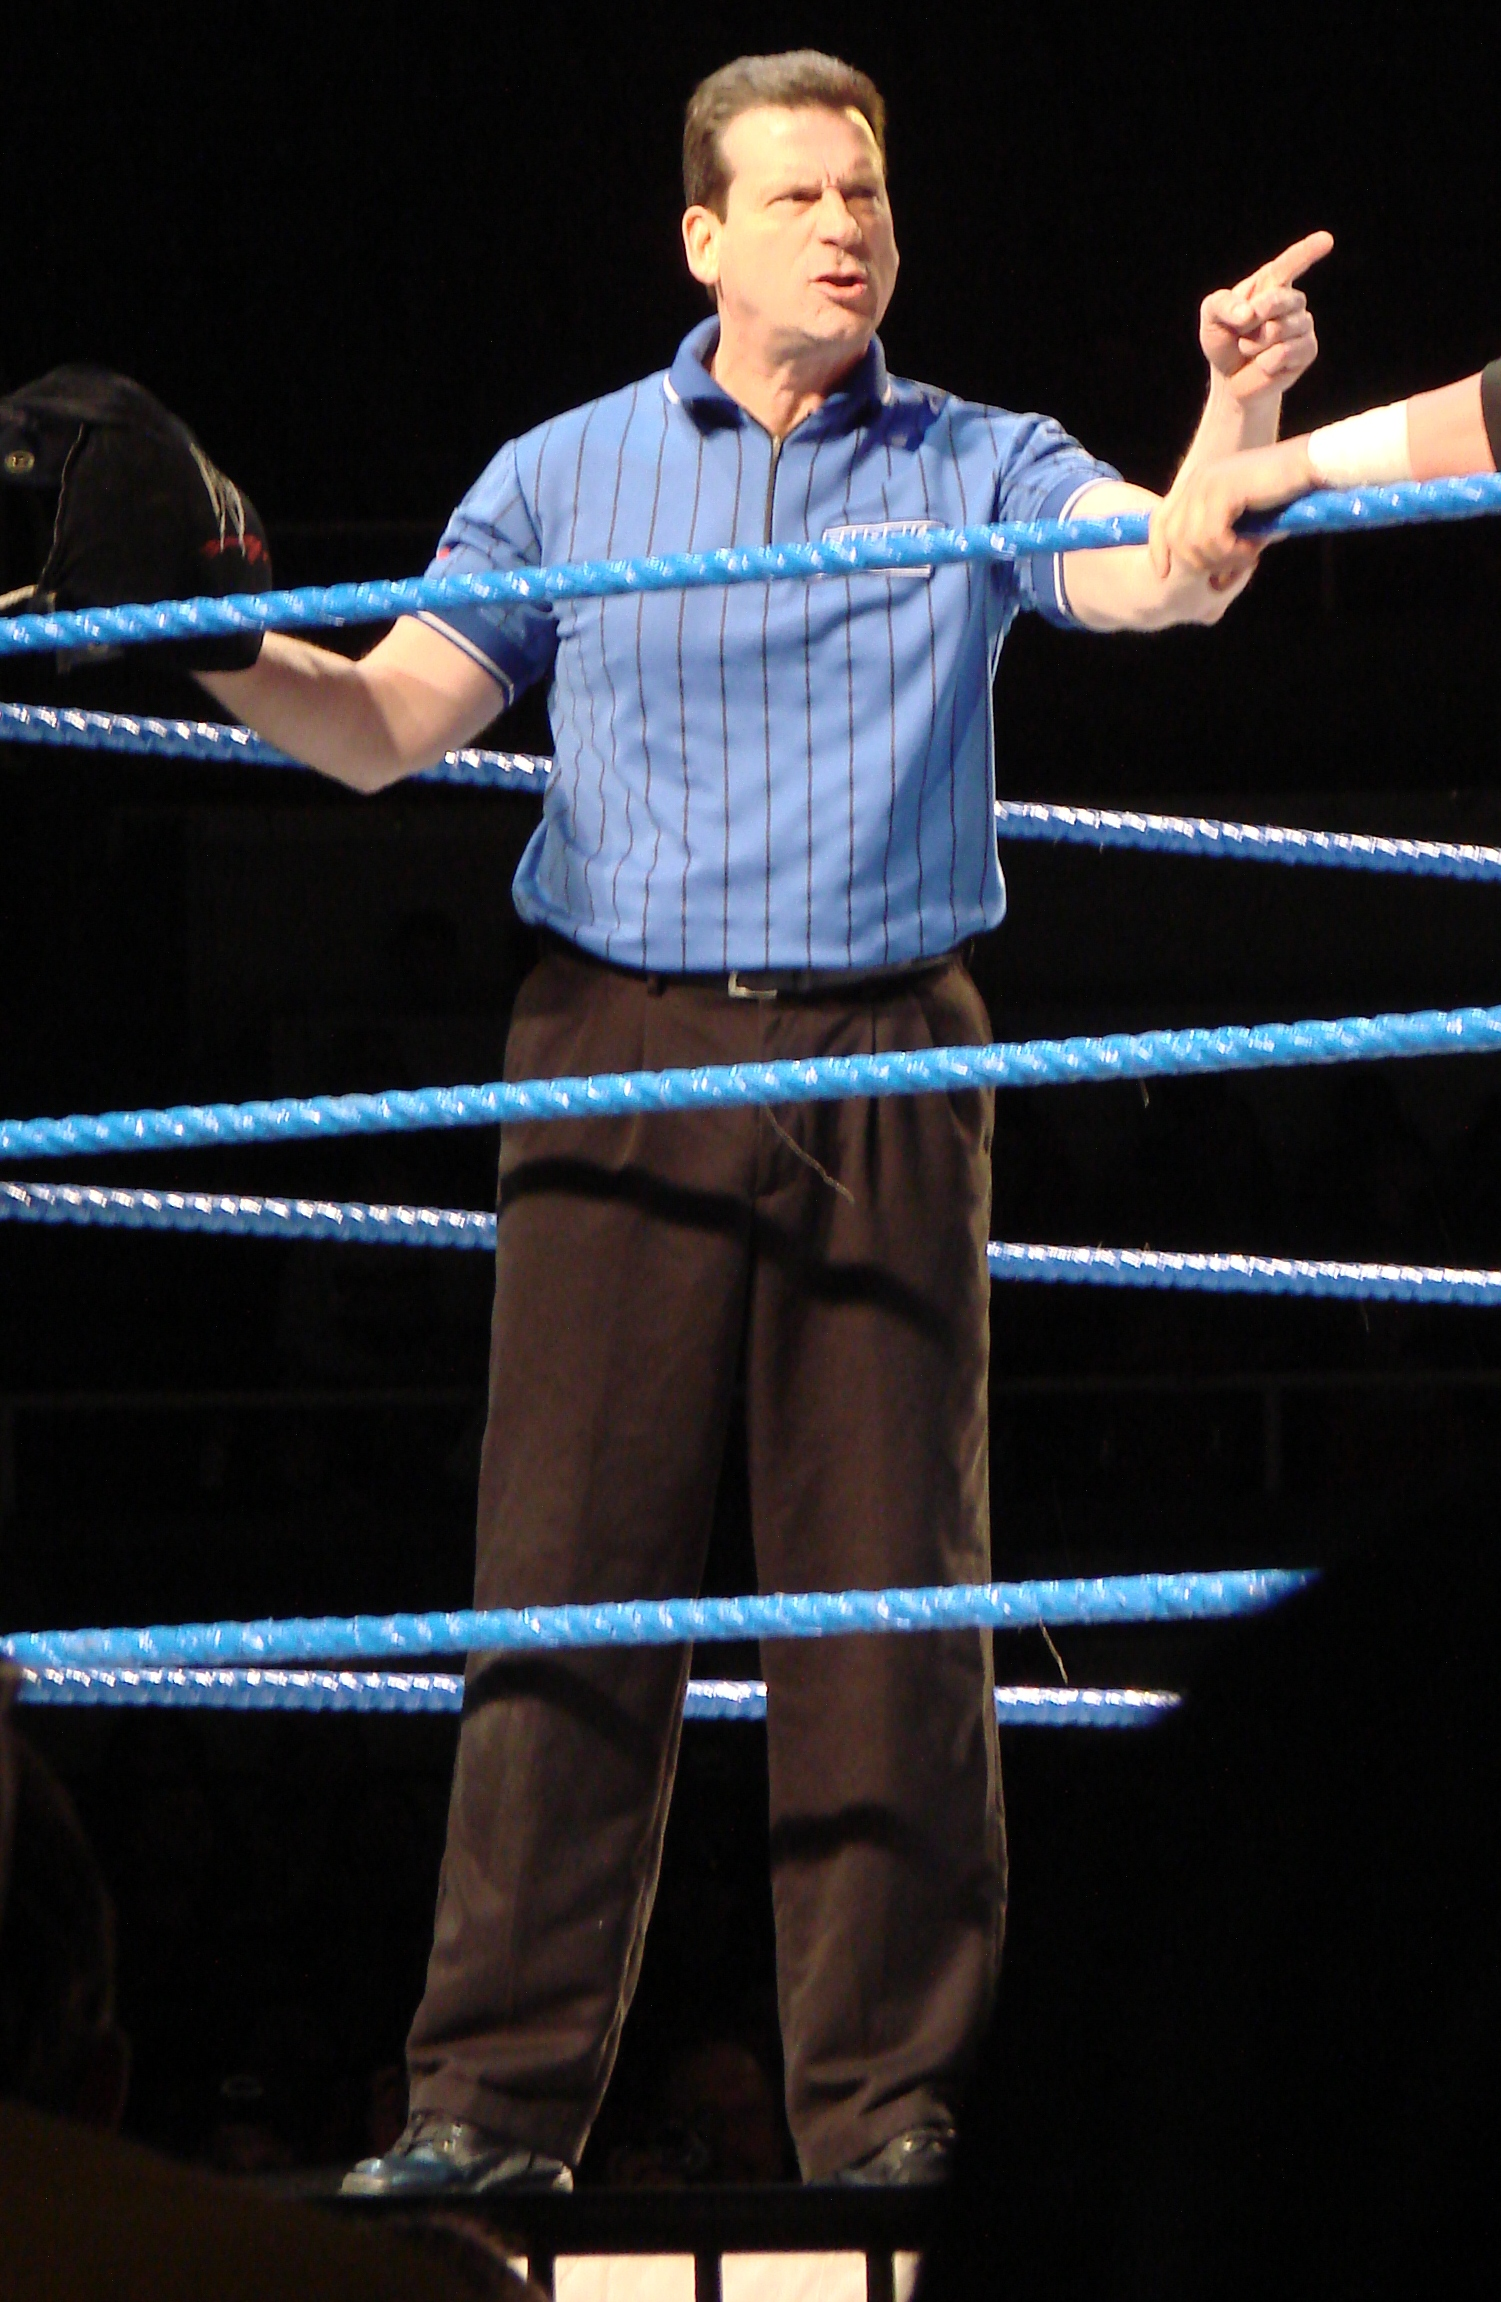 Nick Patrick Referee Wikipedia Joseph jody hamilton (born august 28, 1938) is an american retired professional wrestler and current wrestling promoter and trainer. nick patrick referee wikipedia